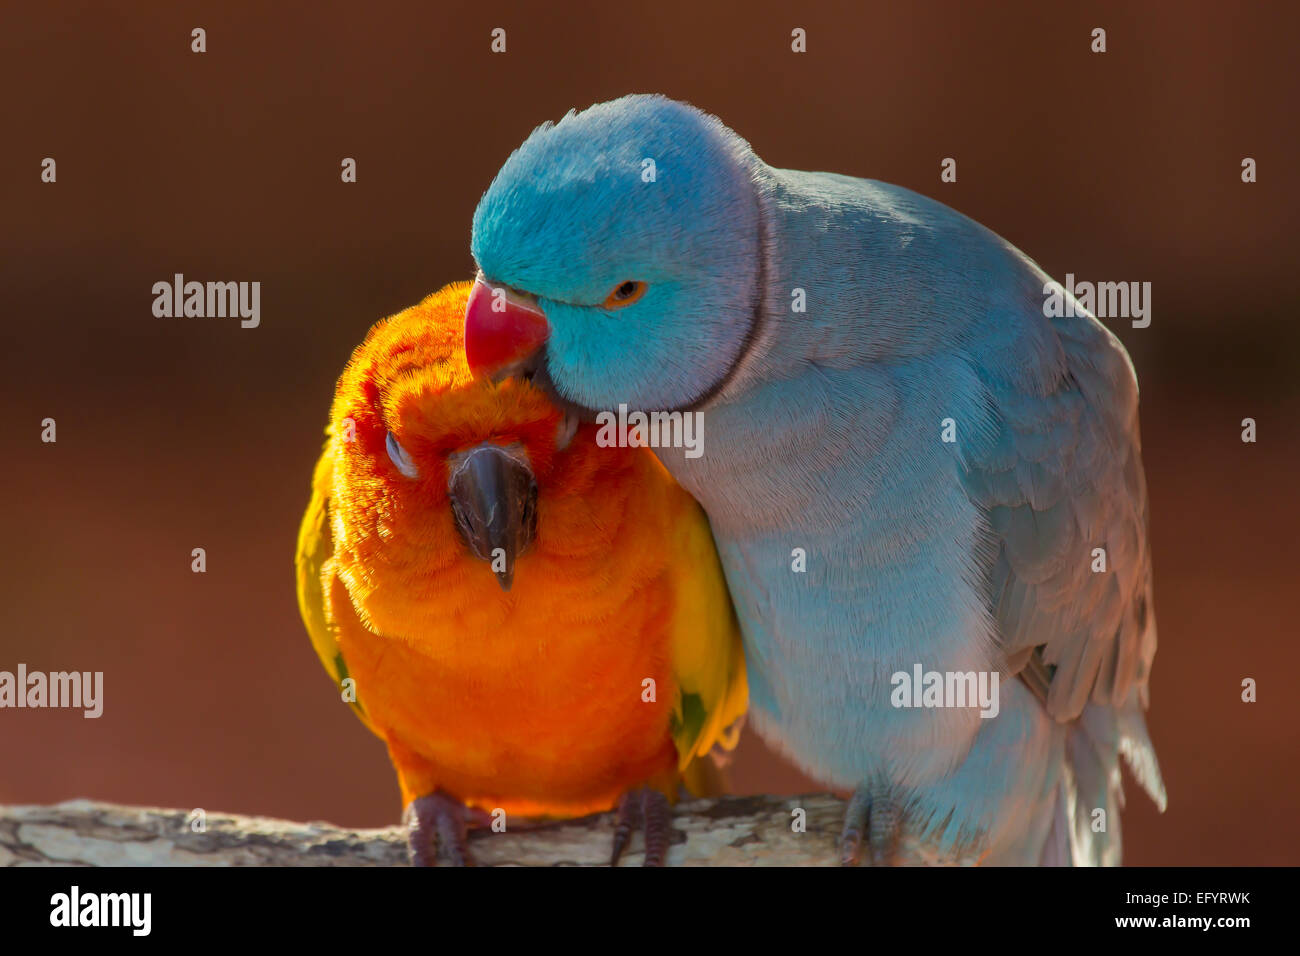 Pair of small colorful parrot Lovebirds  Agapornis grooming each other - Stock Image